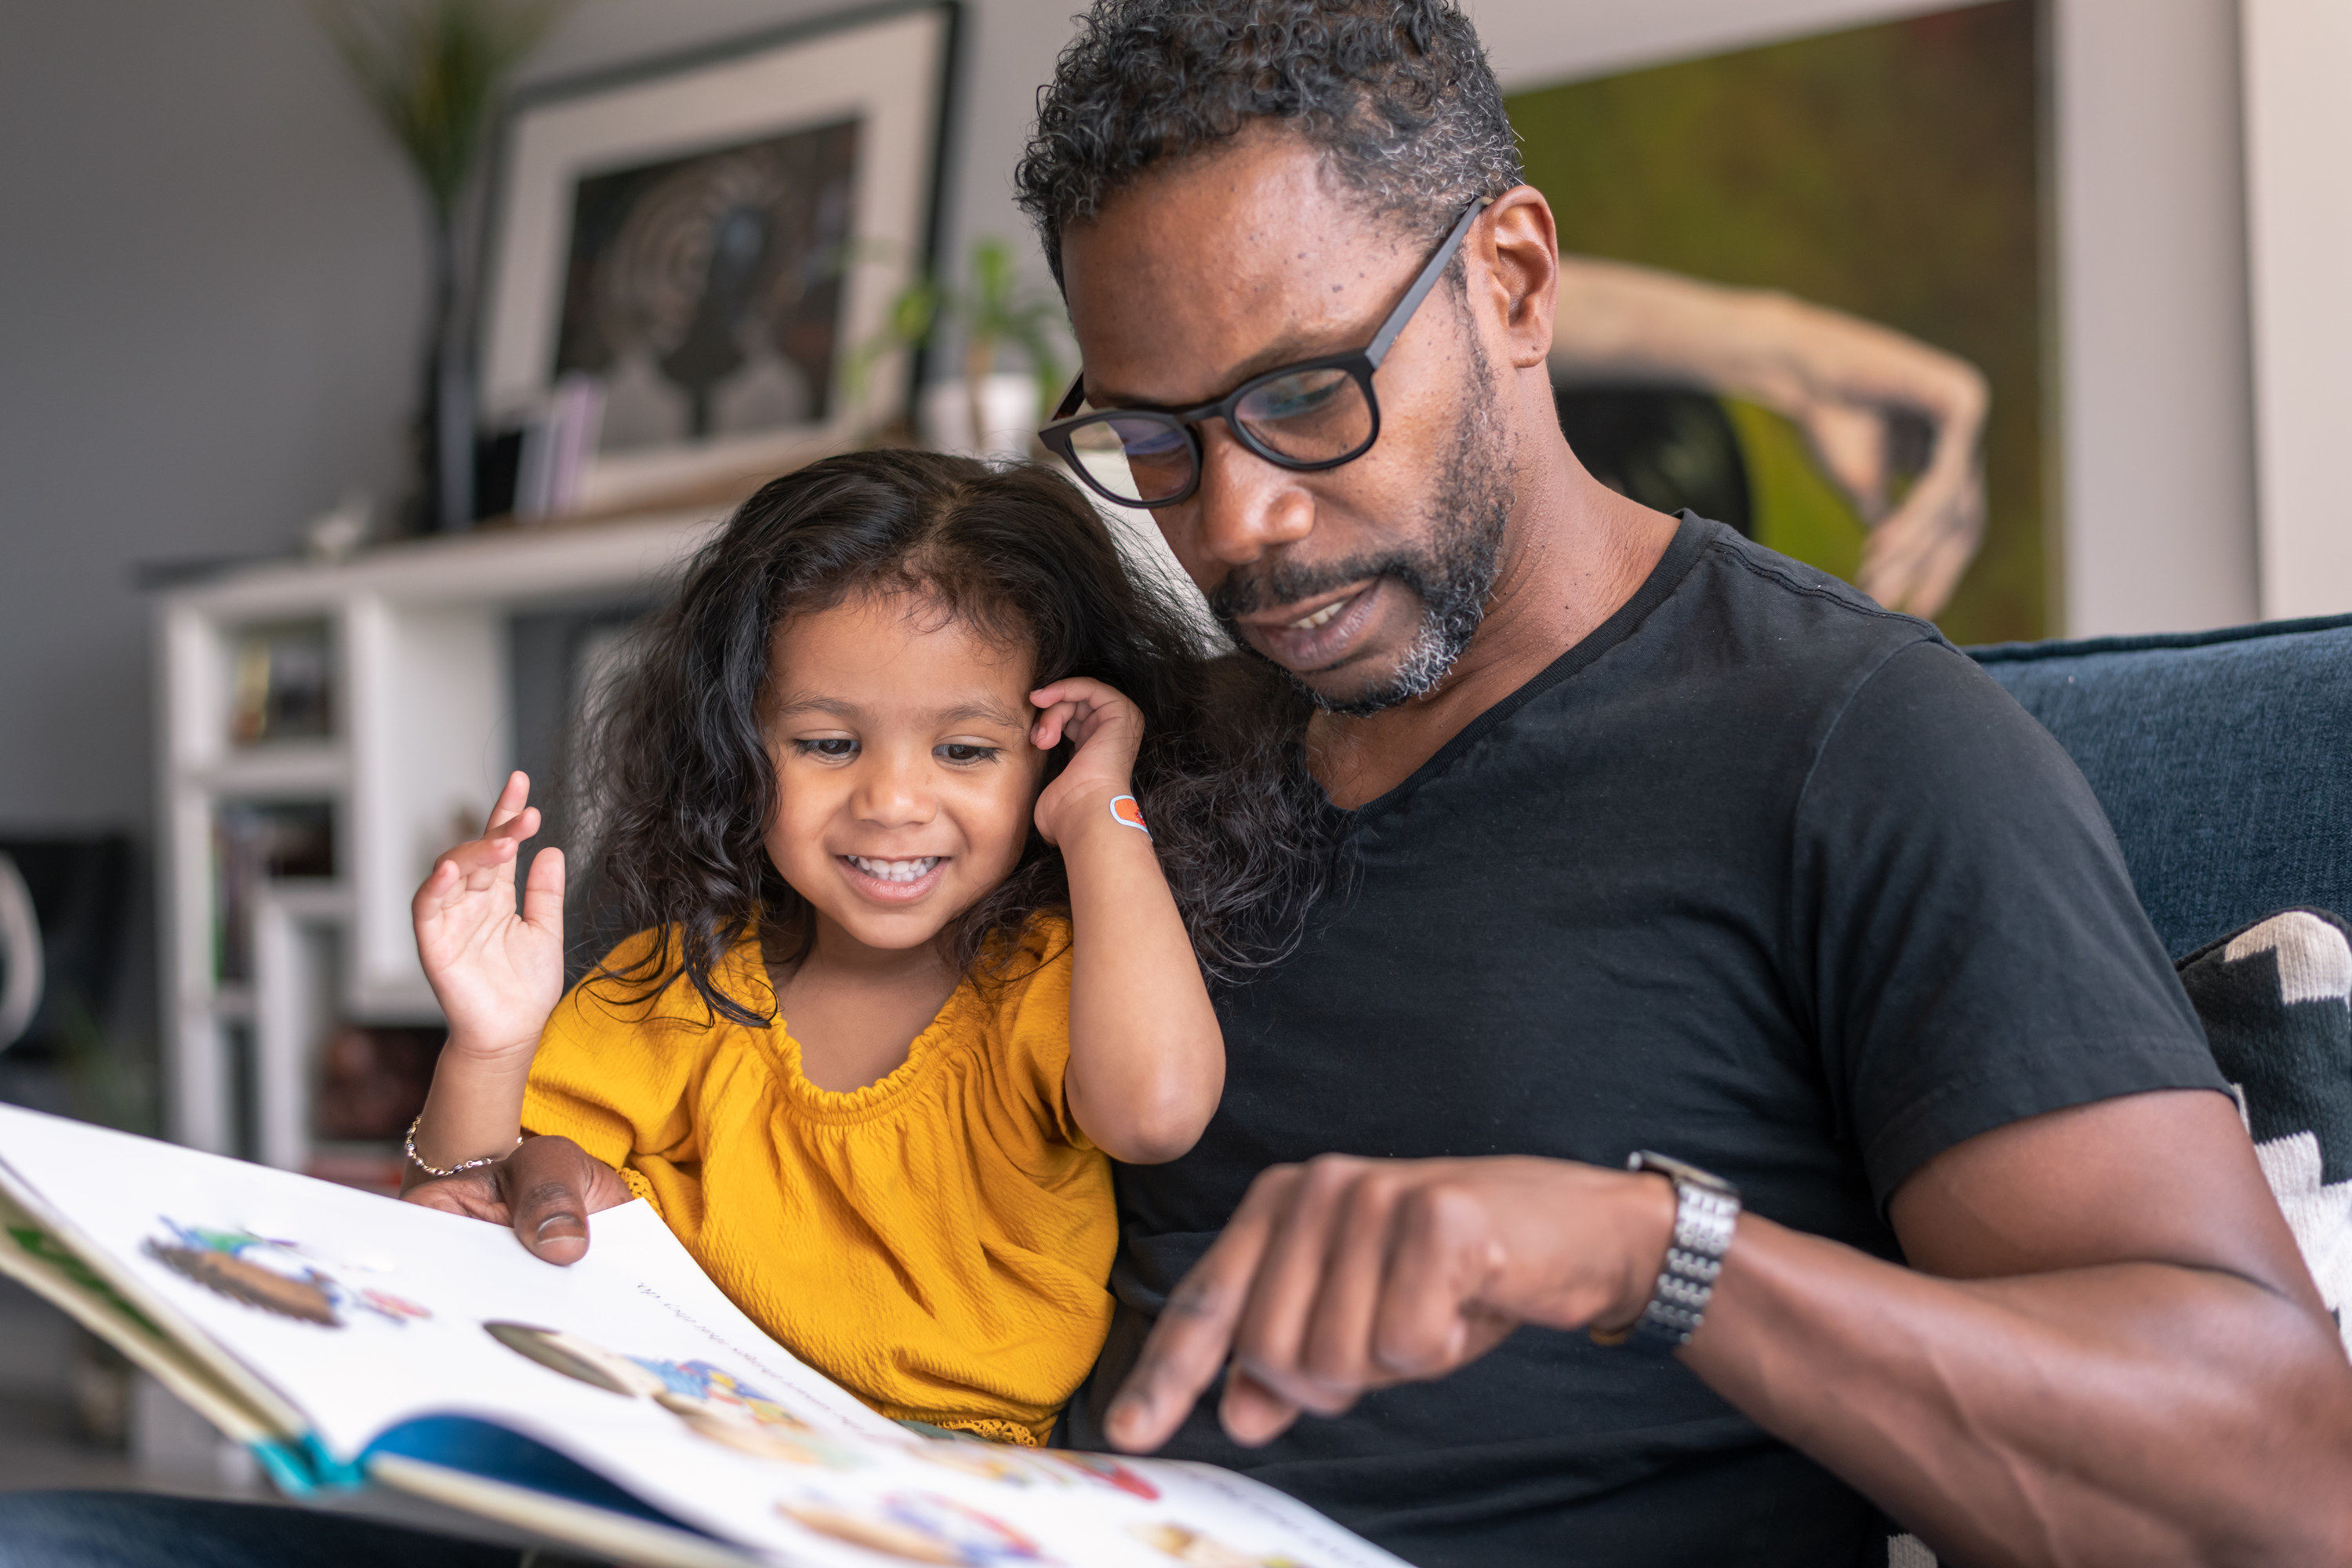 A dad reading to his daughter